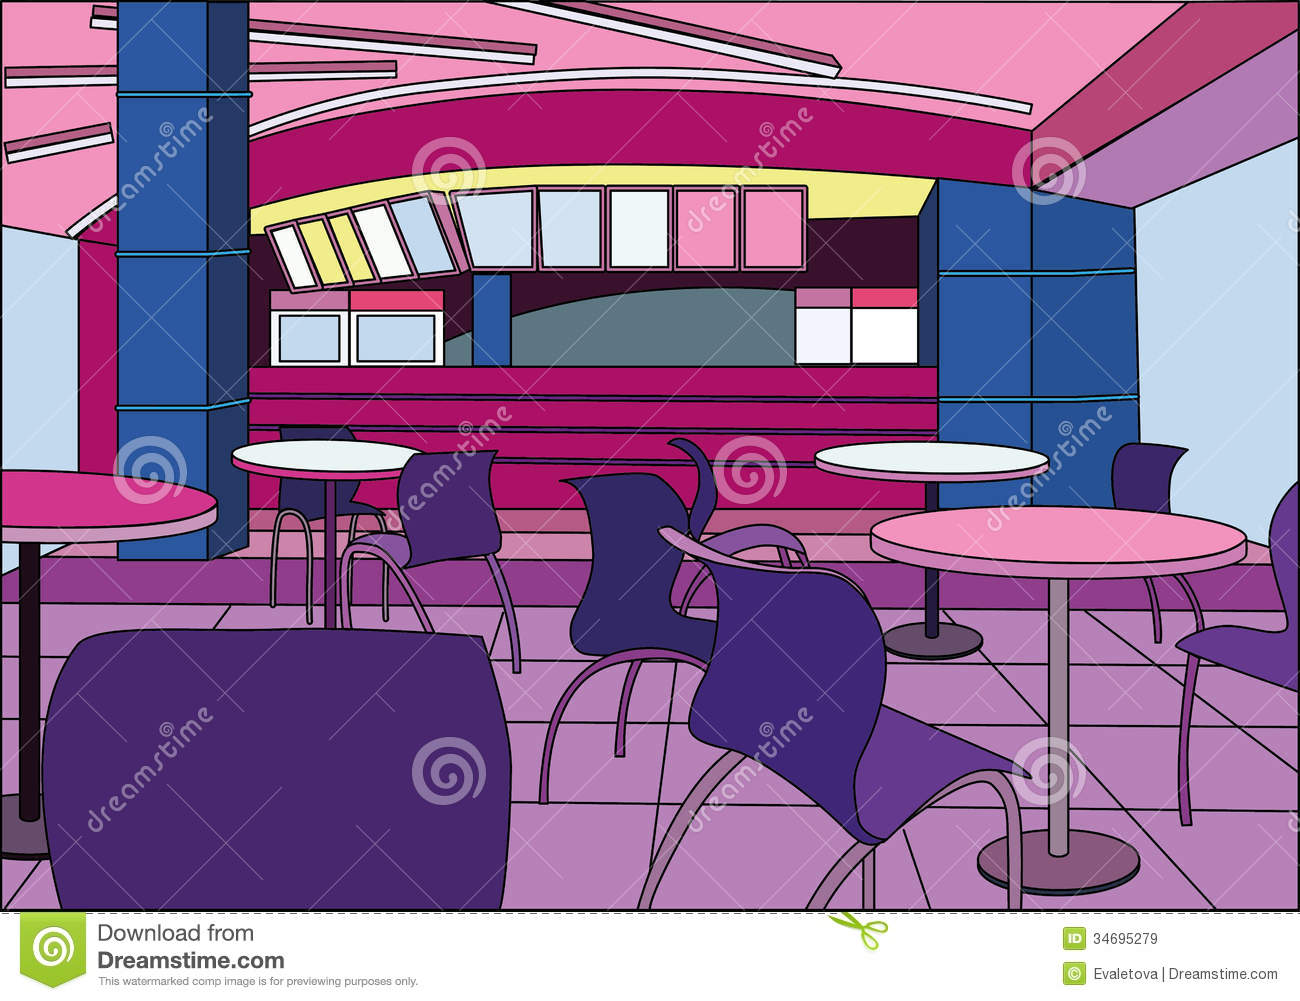 modern cafe interior royalty free stock images - image: 34695279